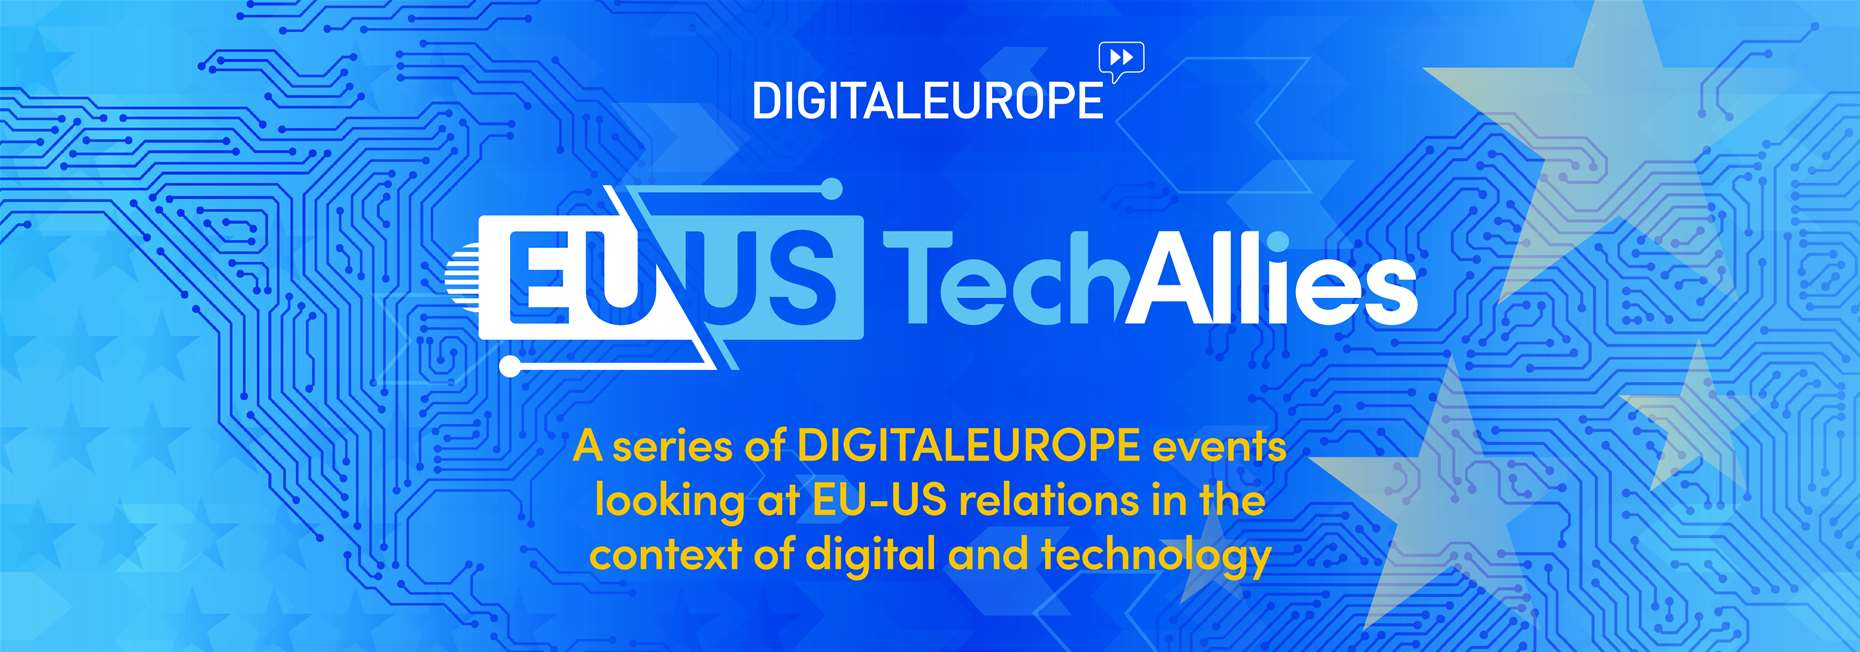 EU US Tech Allies Series